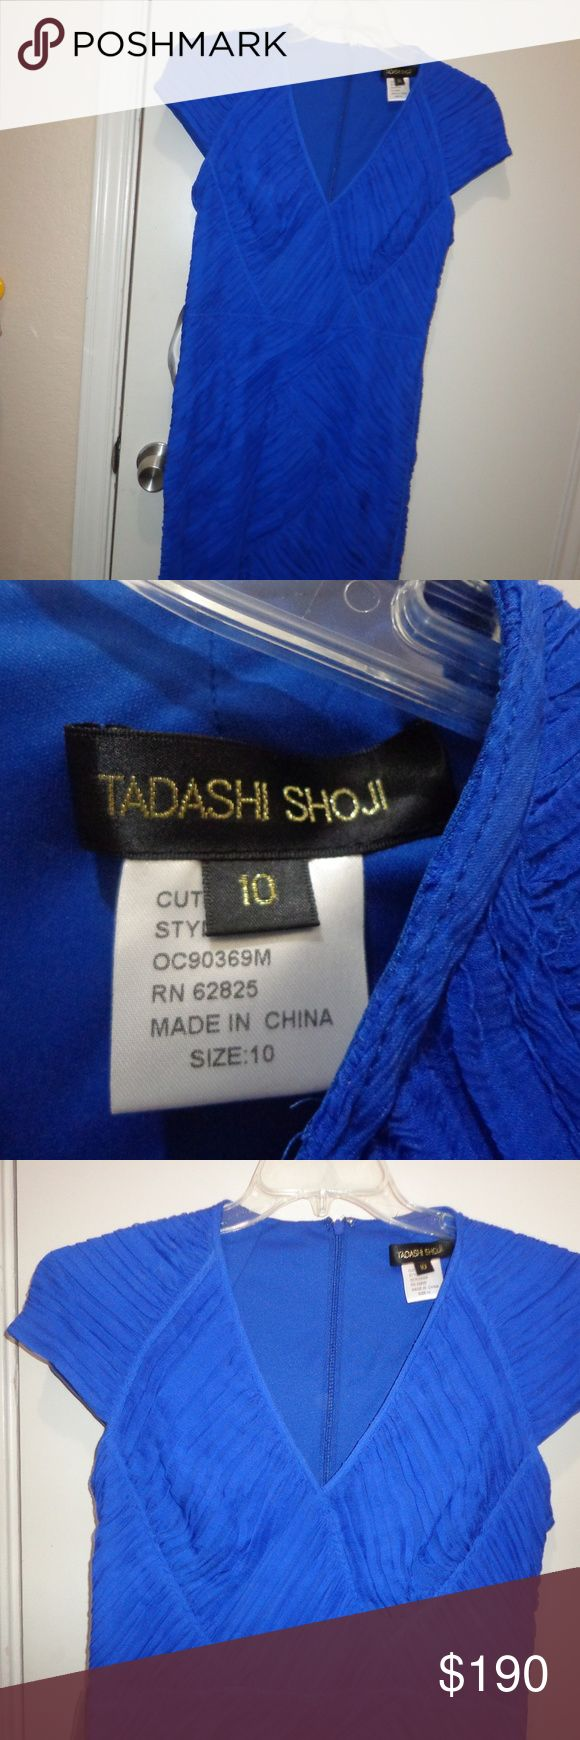 NWT - Tadashi Shoji Silk Dress Size 10 new with tags. Has the do not remove tag from saks. Not actual price tag. Never worn  silk and lined poly   royal blue, lined,  armpit to armpit 19  length 40  11/27--- Tadashi Shoji Dresses